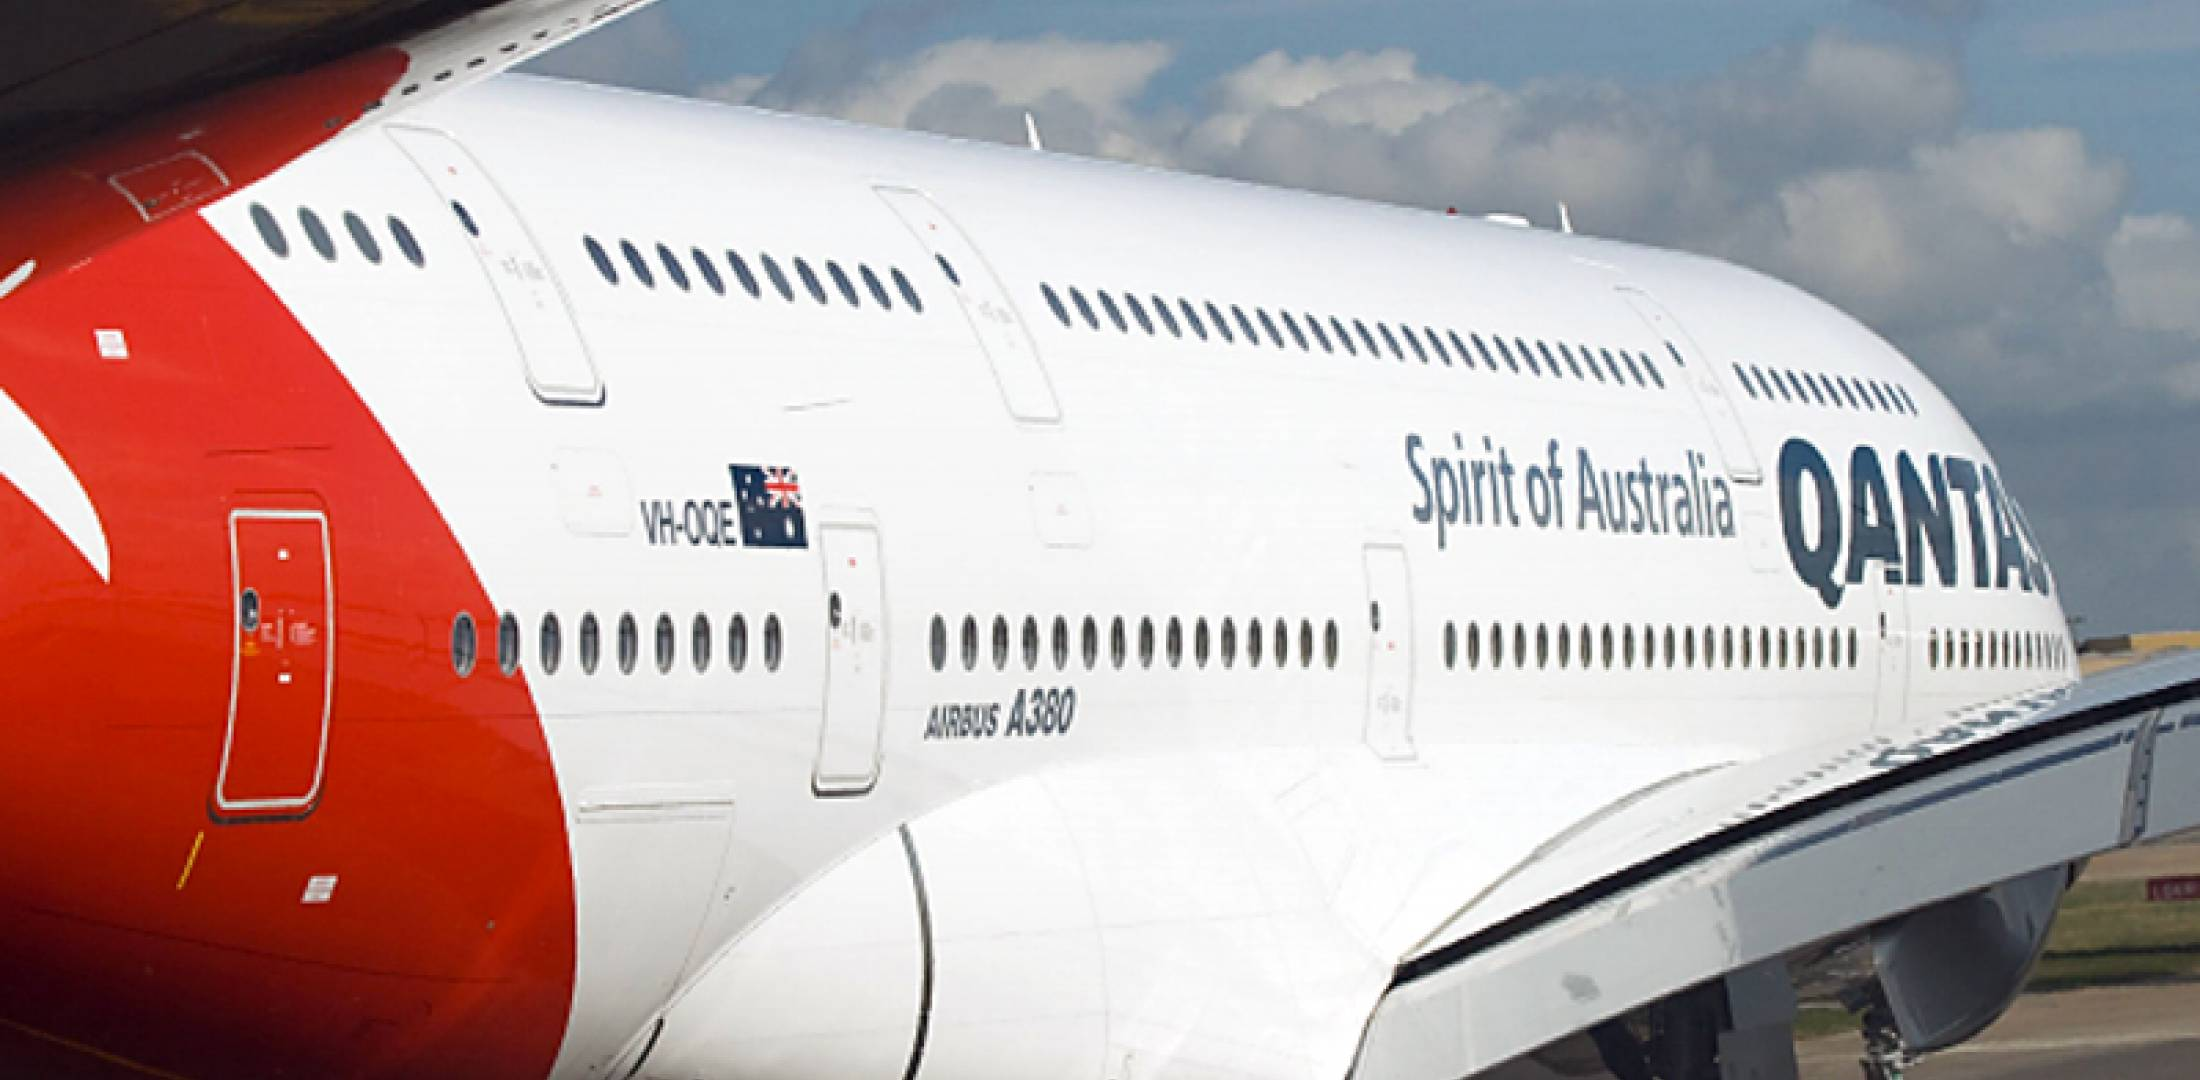 ATSB Reports on Distracted Pilot | News: Aviation